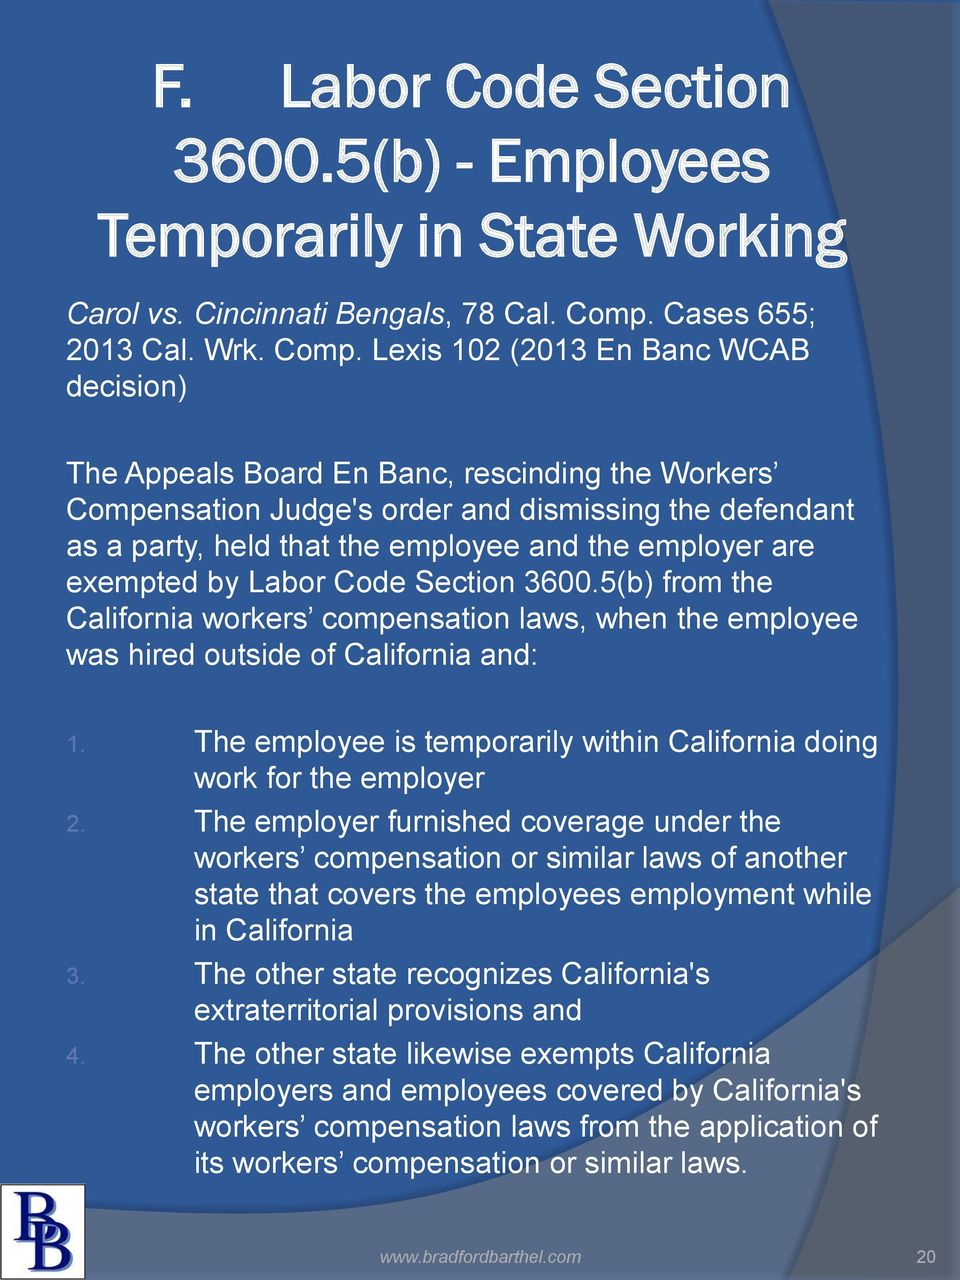 Lexis 102 (2013 En Banc WCAB decision) The Appeals Board En Banc, rescinding the Workers Compensation Judge's order and dismissing the defendant as a party, held that the employee and the employer